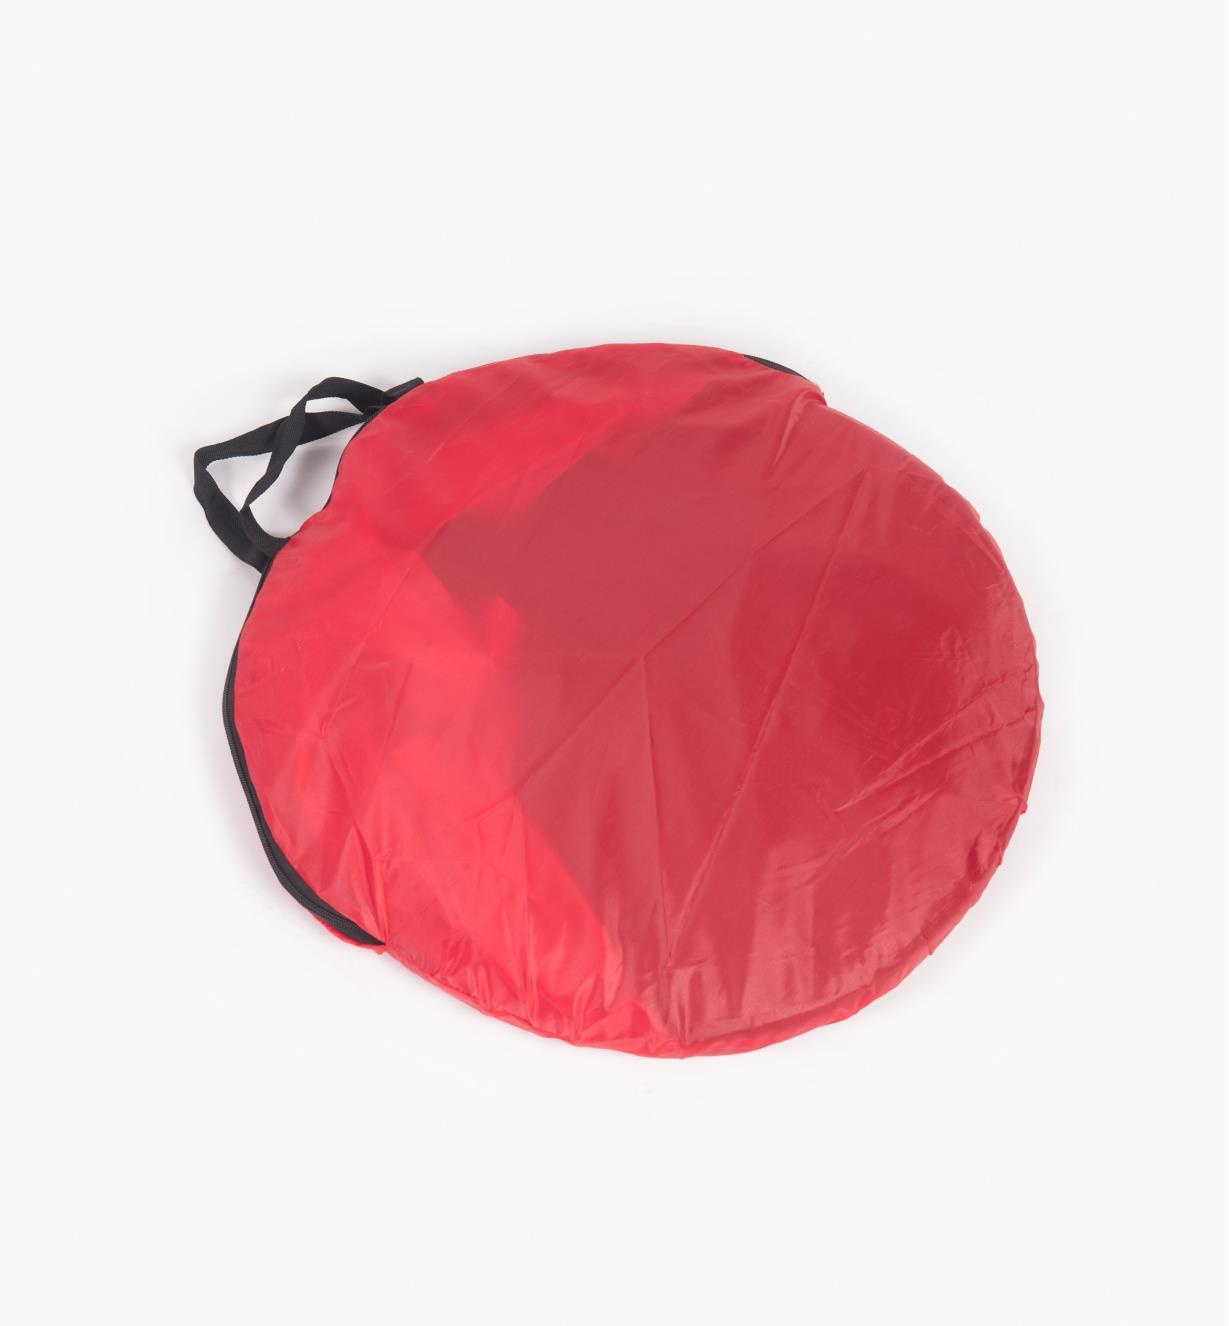 Shelter folded into zippered storage bag.